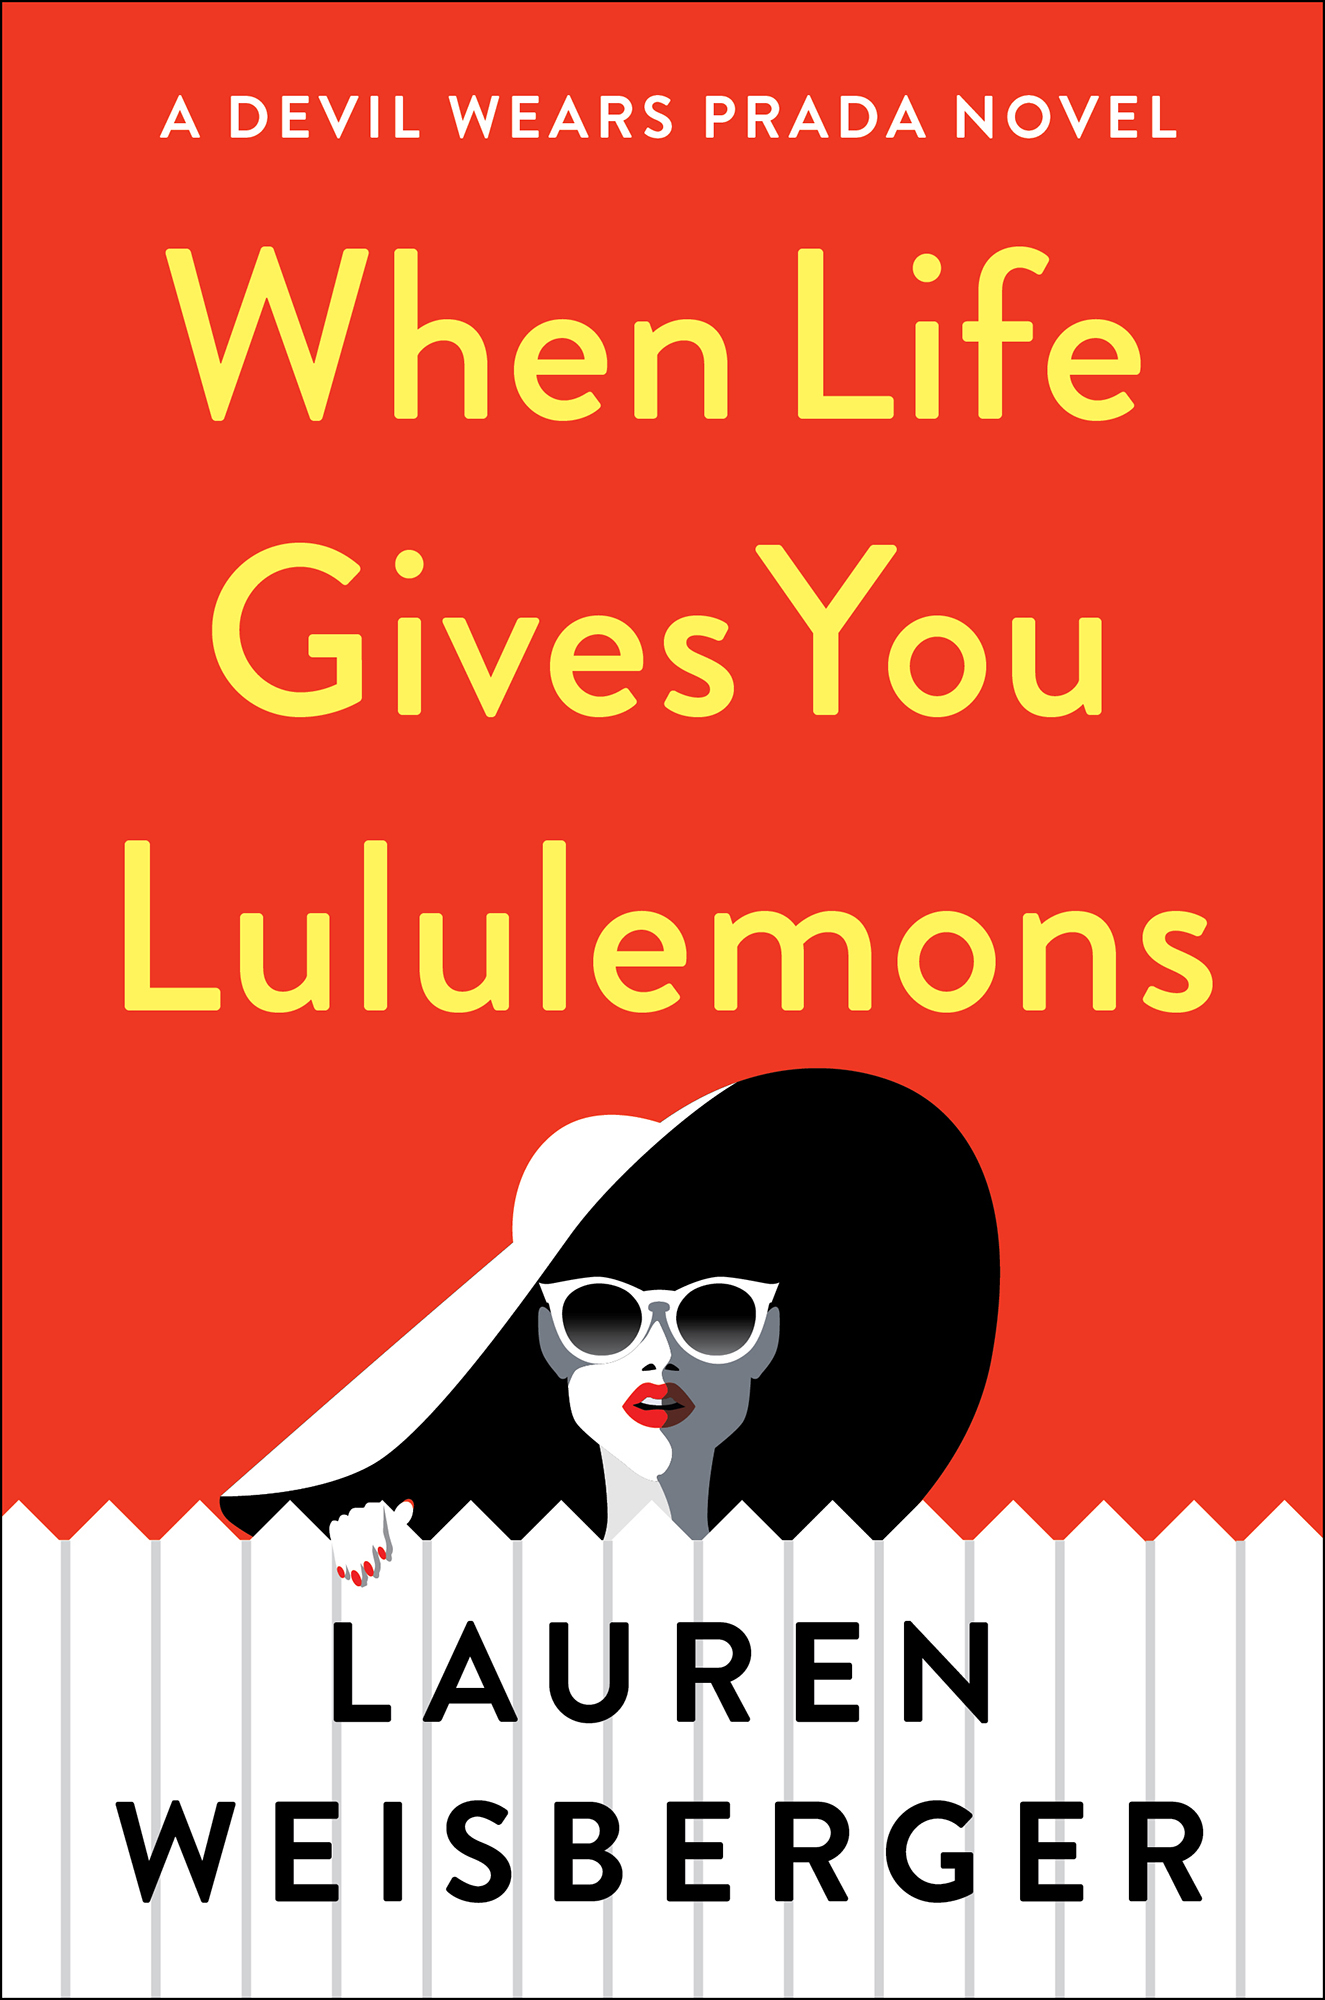 When Life Gives You Lululemons - Lauren Weisberger [kindle] [mobi]